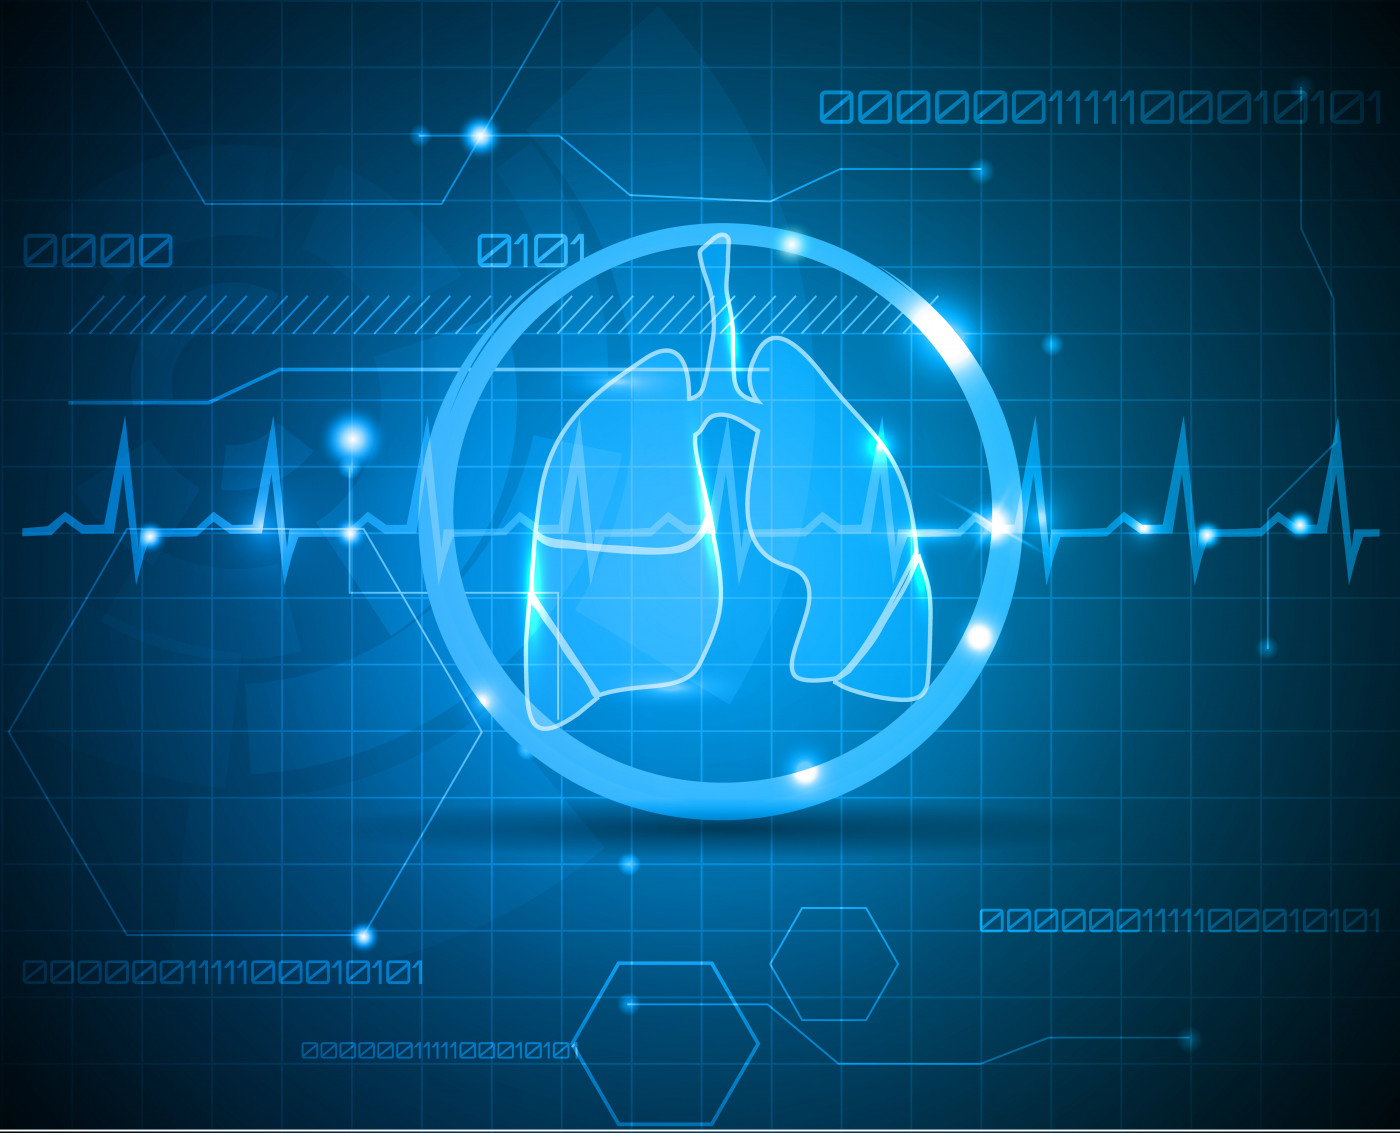 SVS trial and lung function